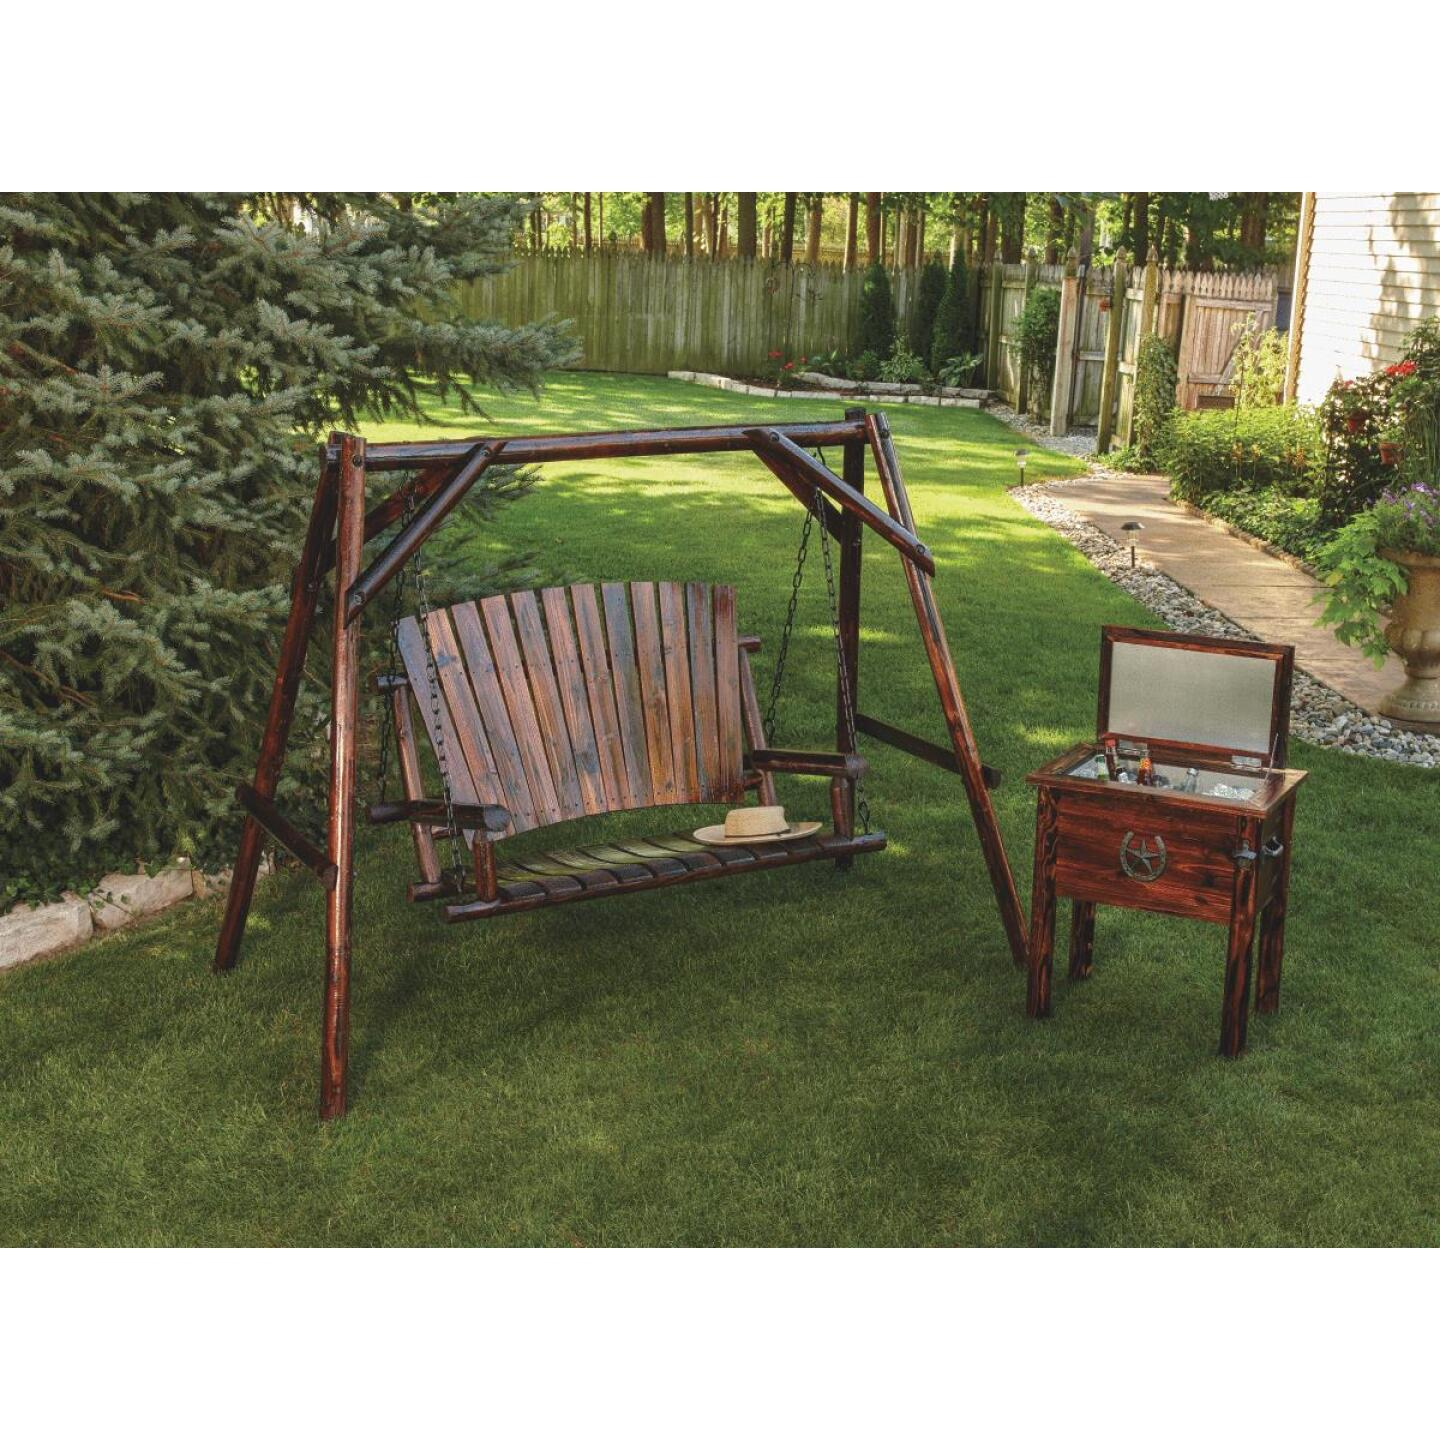 Char-Log 2-Person 90 In. W. x 67.5 In. H. x 50 In. D. Charred Wood Patio Swing Image 2